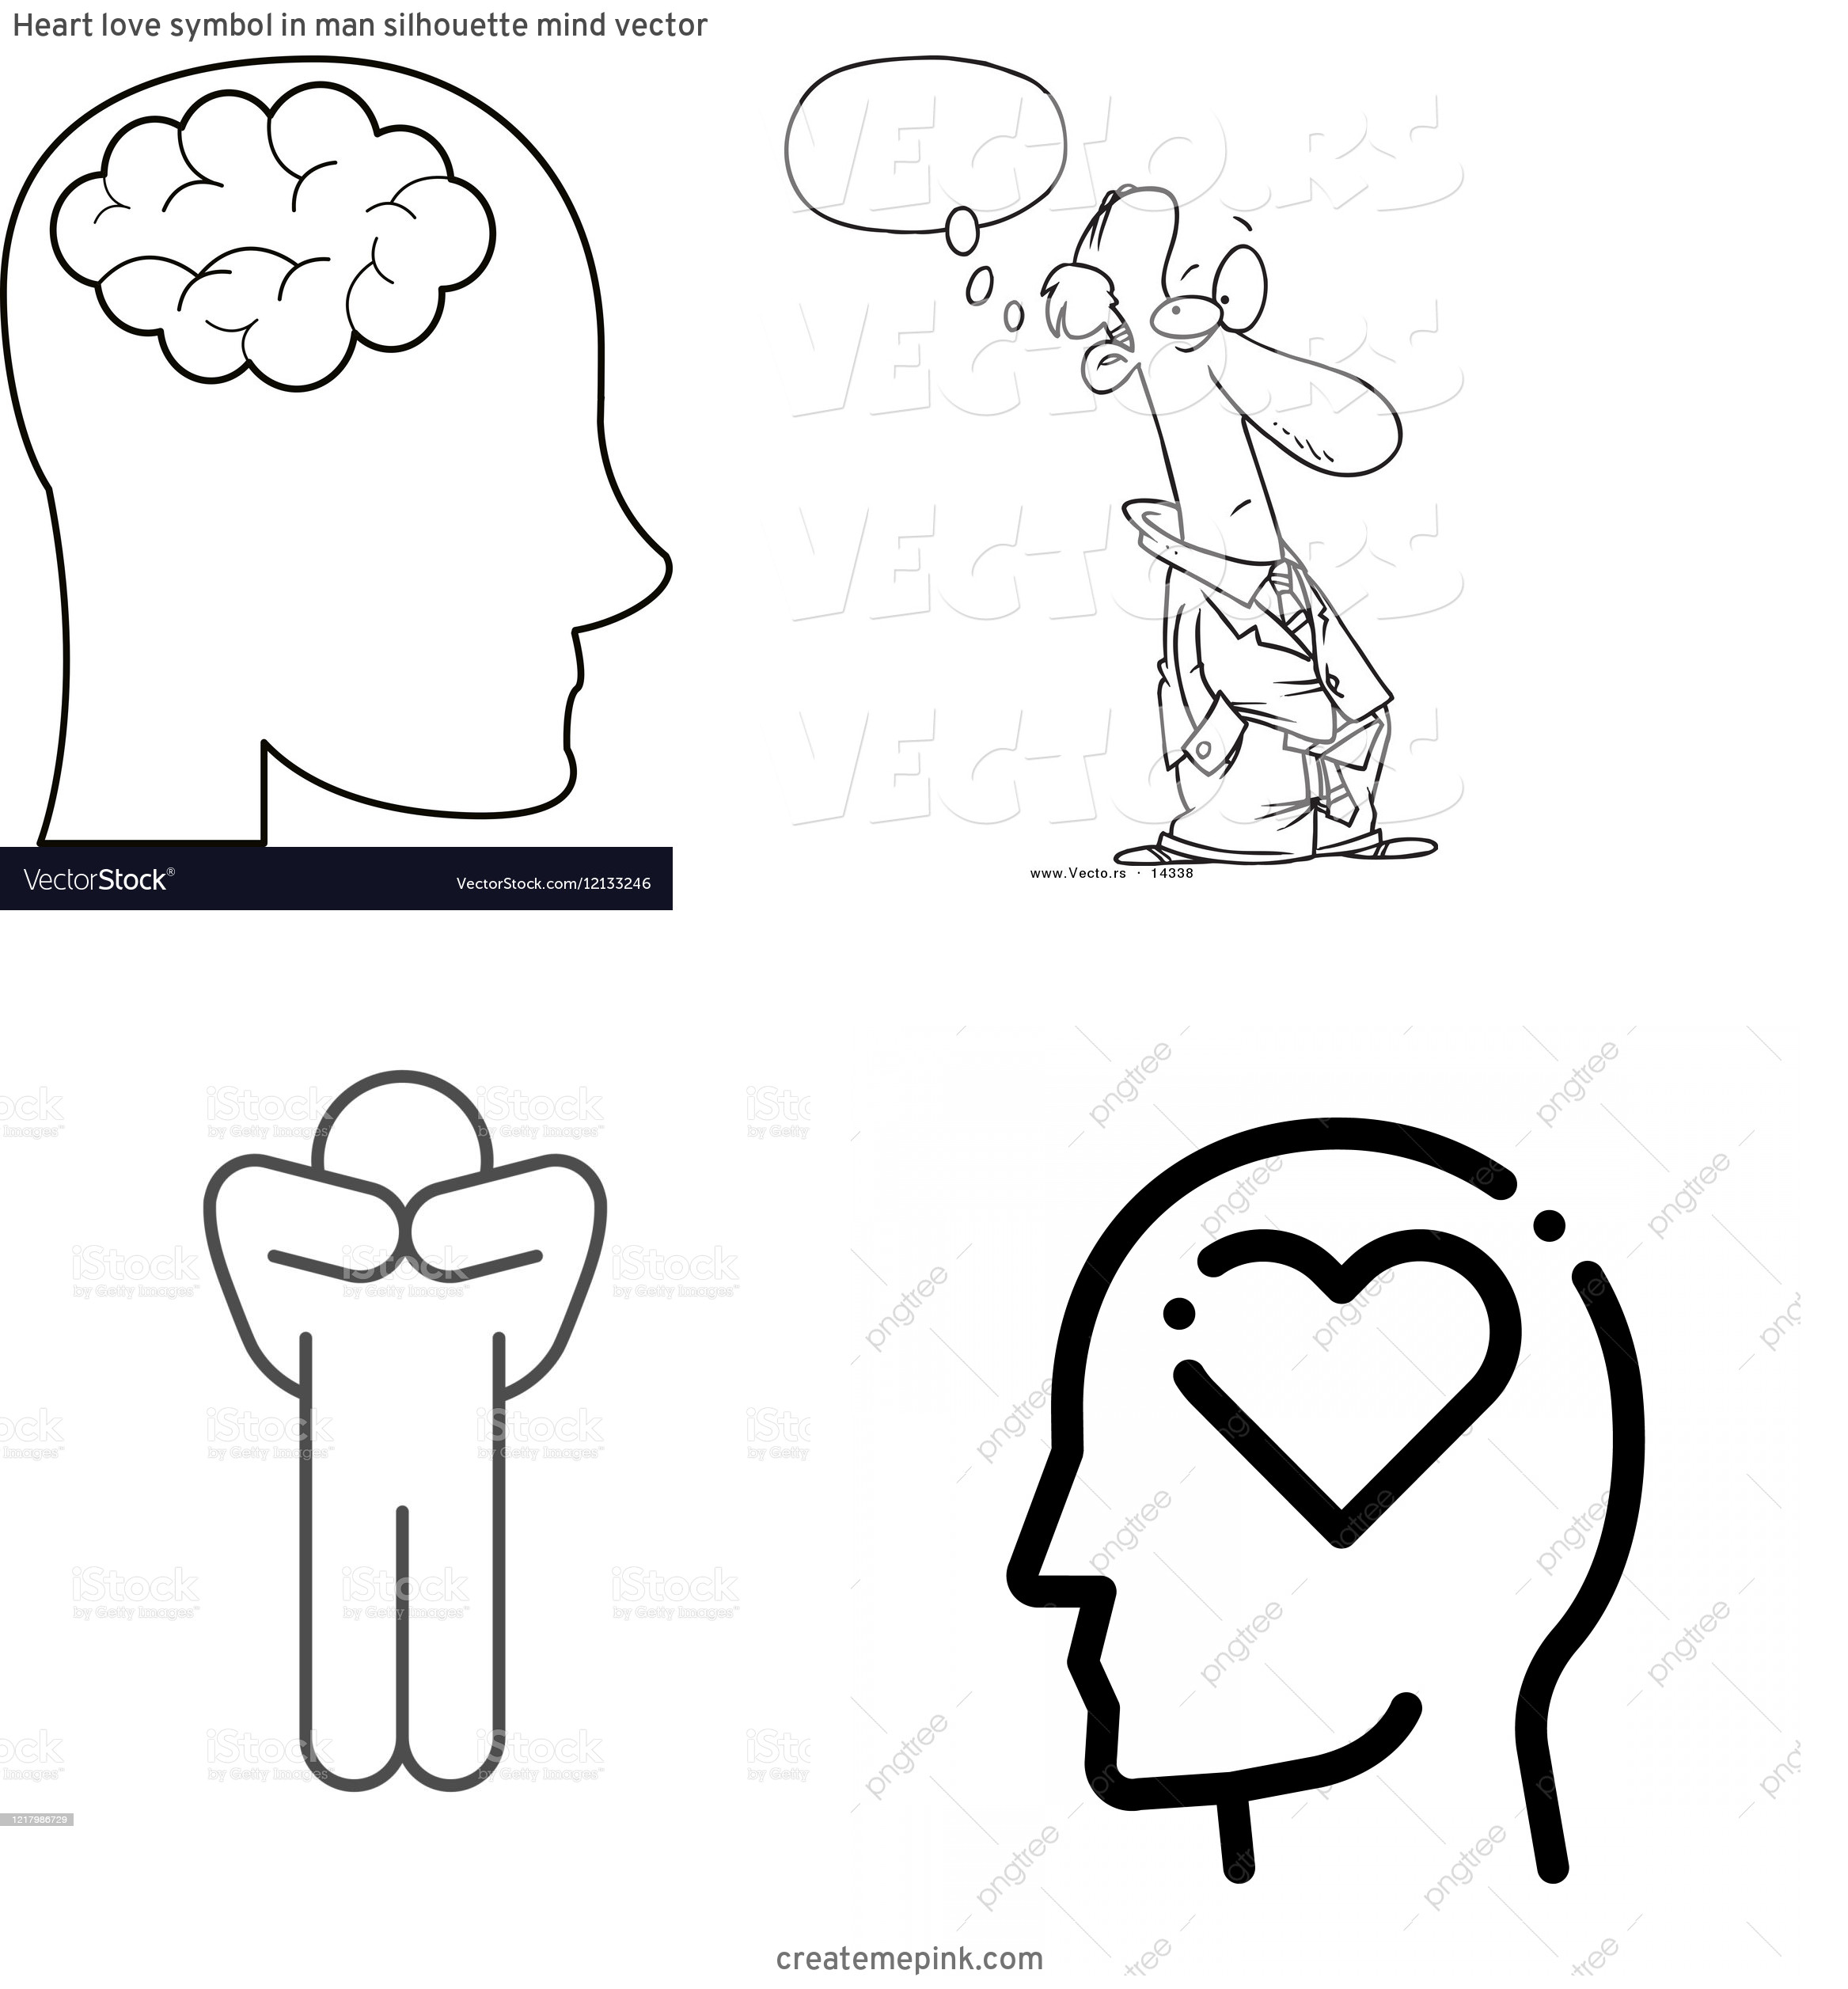 Person Thinking Outline Vector: Heart Love Symbol In Man Silhouette Mind Vector